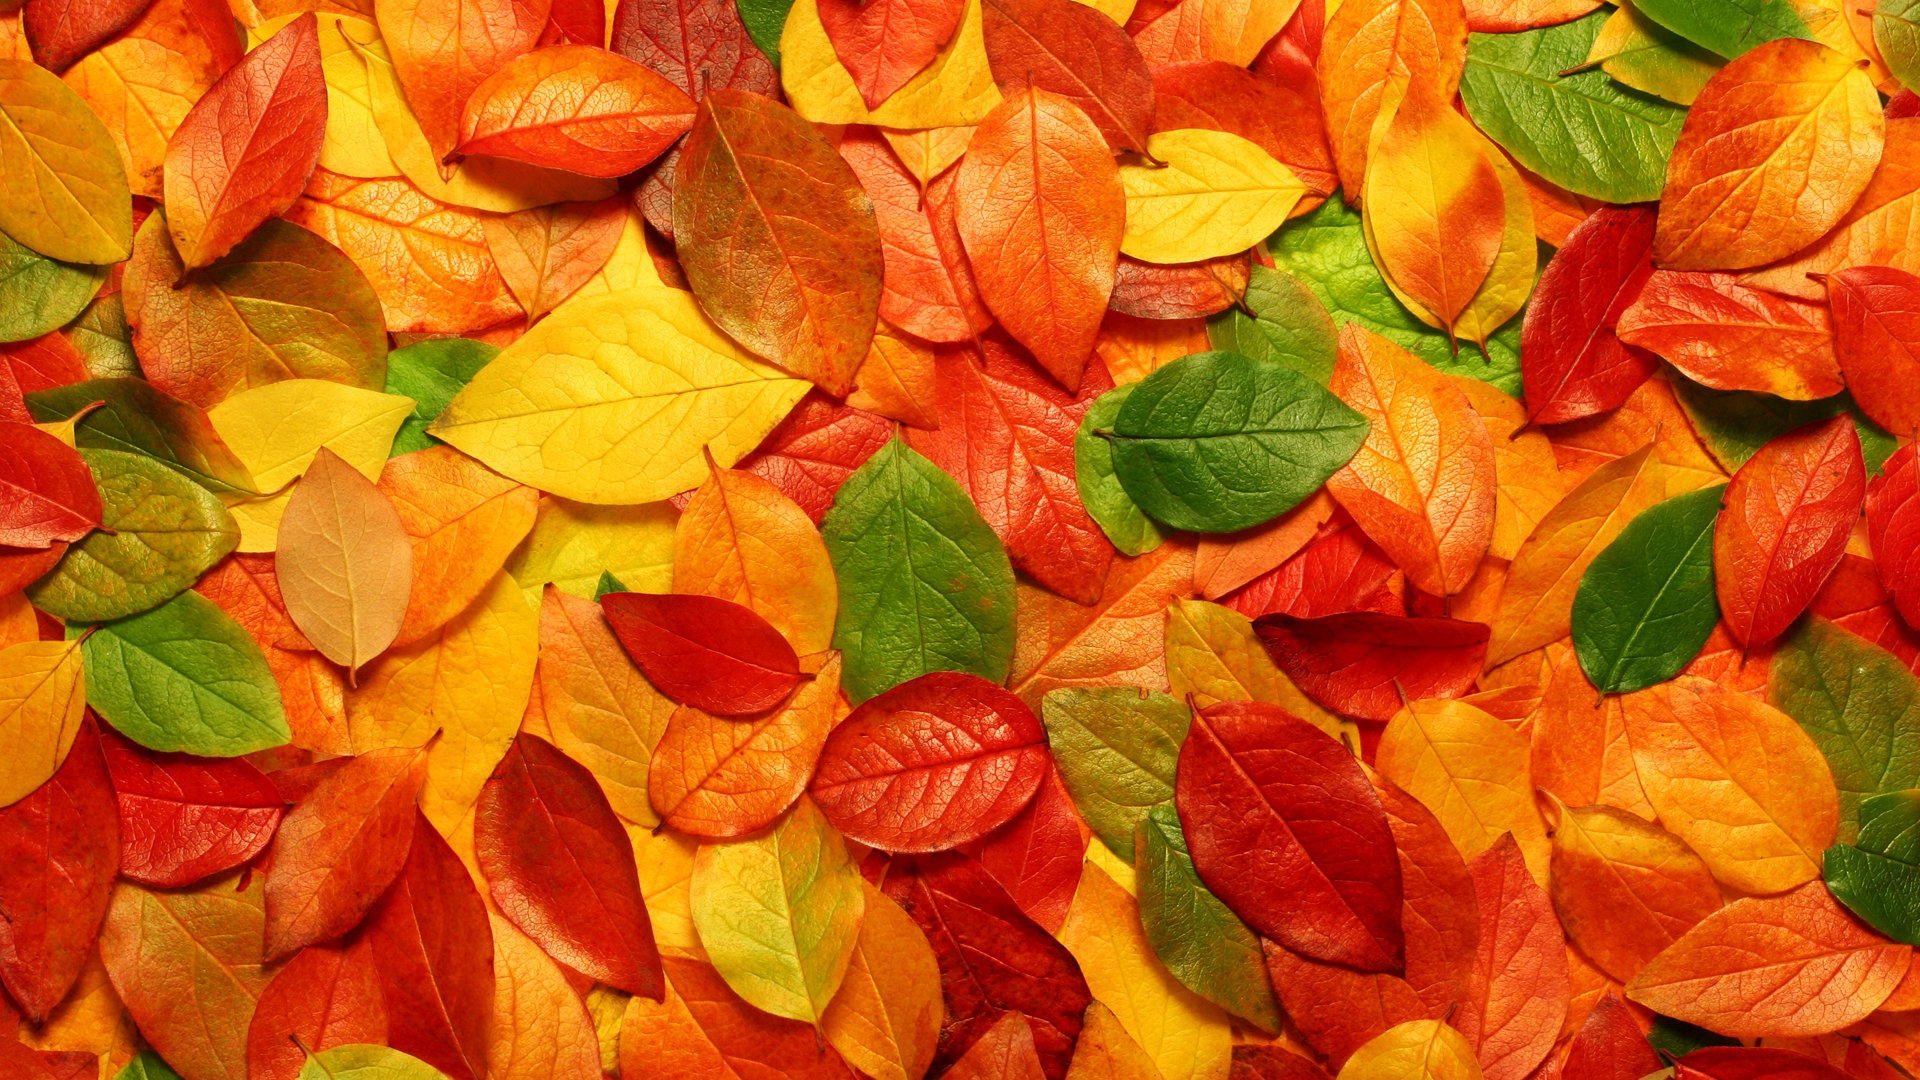 http://www.jkahir.com/wp-content/uploads/2017/11/Tree-Colorful-Leaves-Real-Colors-Nature.jpg